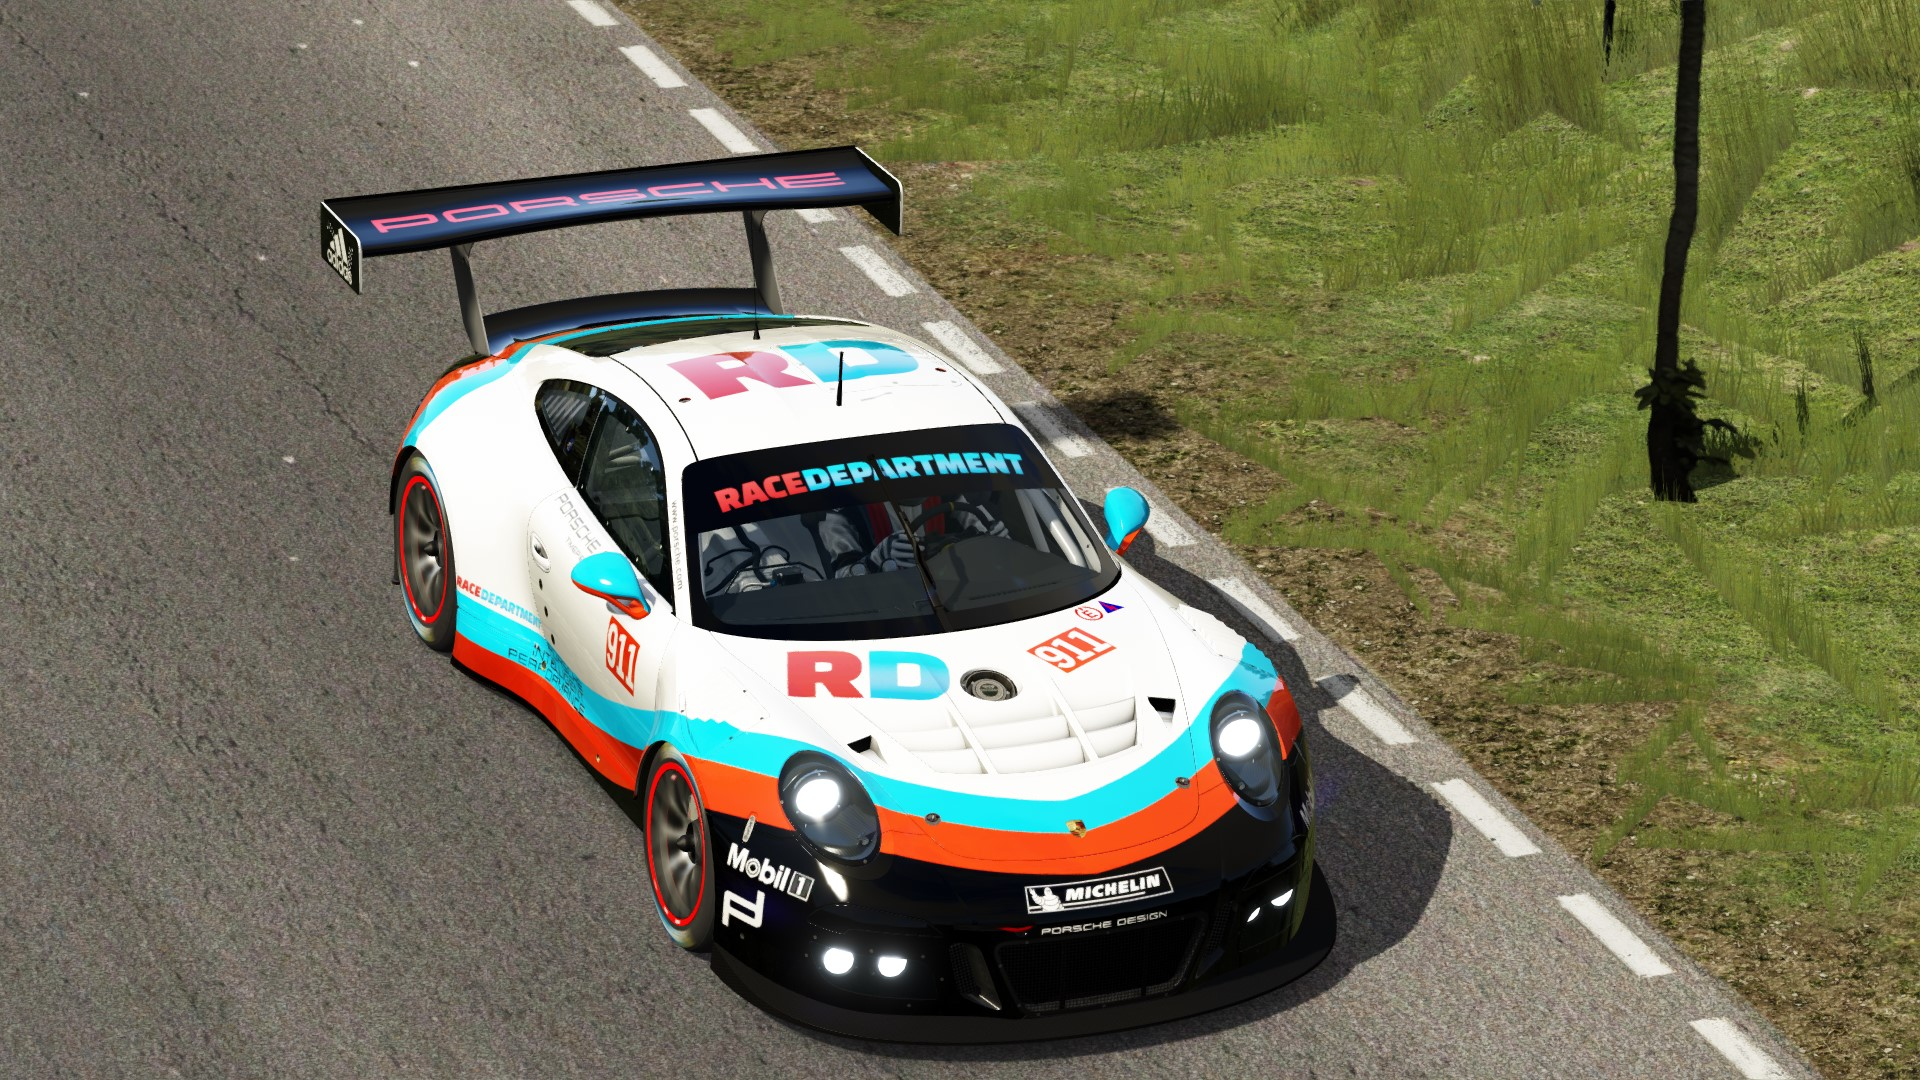 Screenshot_ks_porsche_911_gt3_r_2016_thomson_6-2-117-12-6-15.jpg